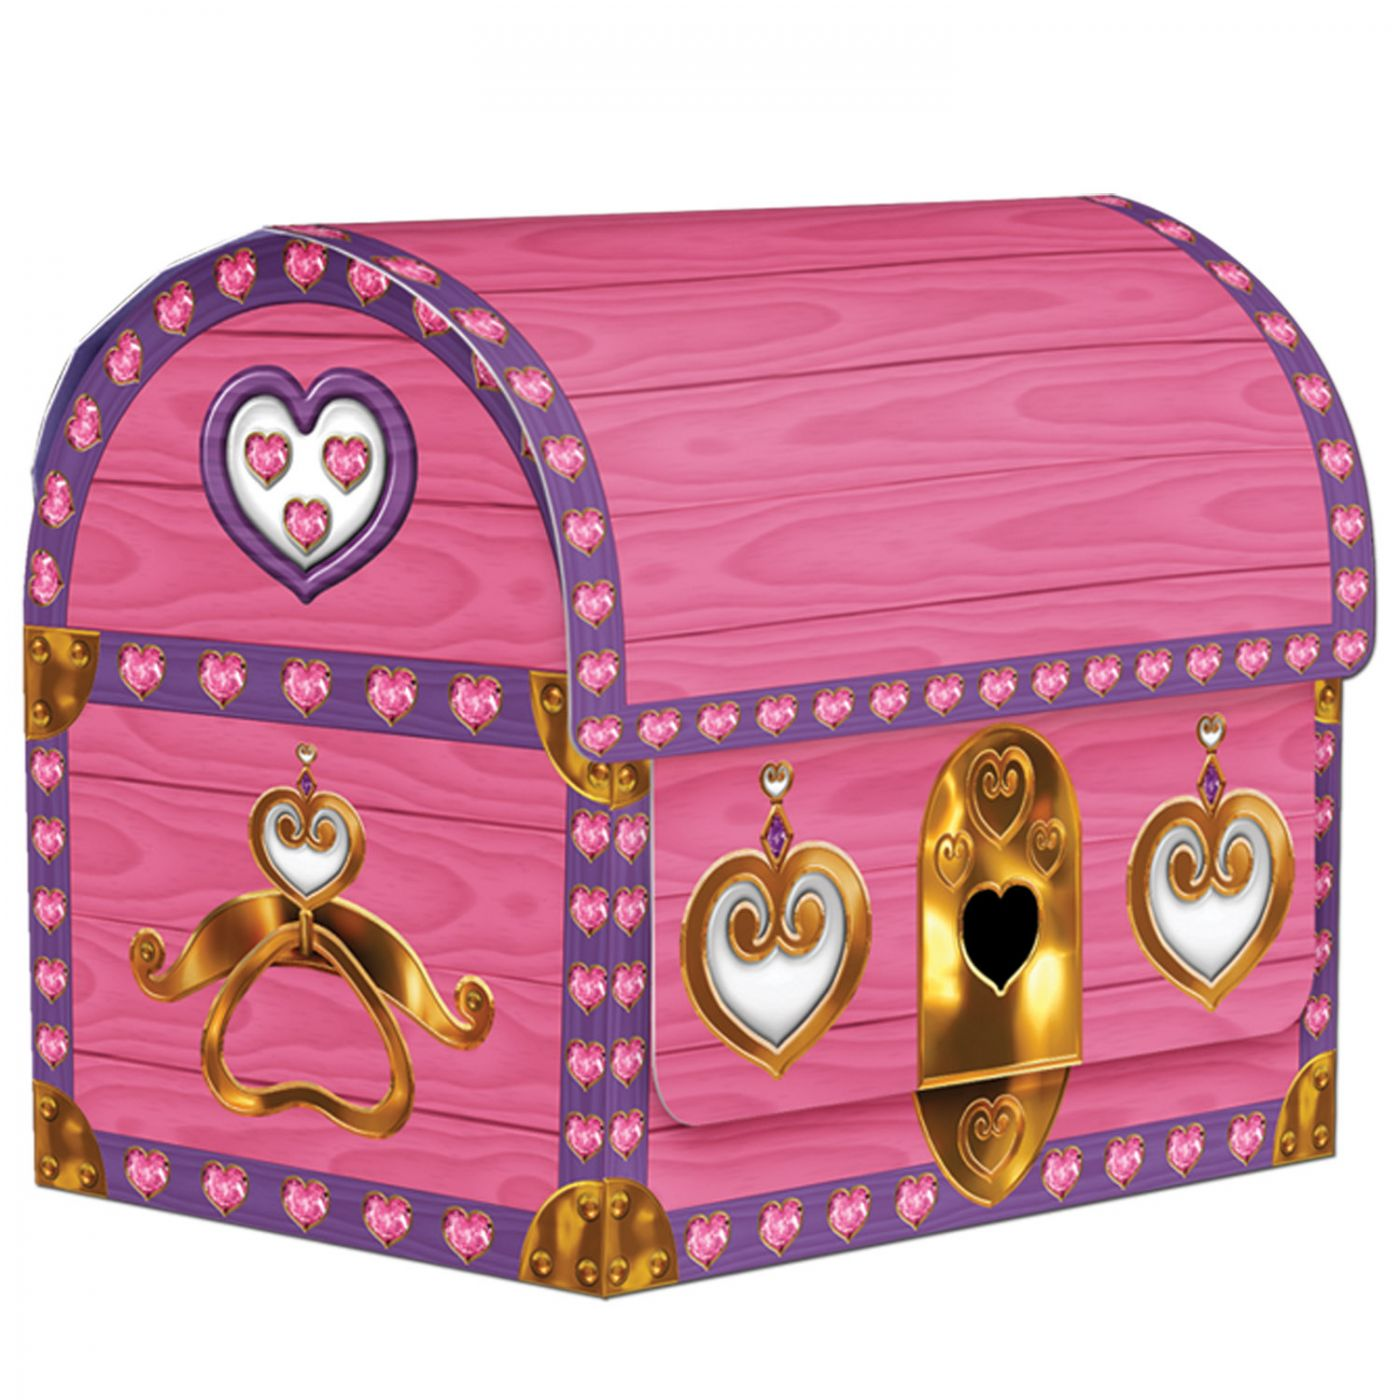 Princess Treasure Chest Favor Boxes image